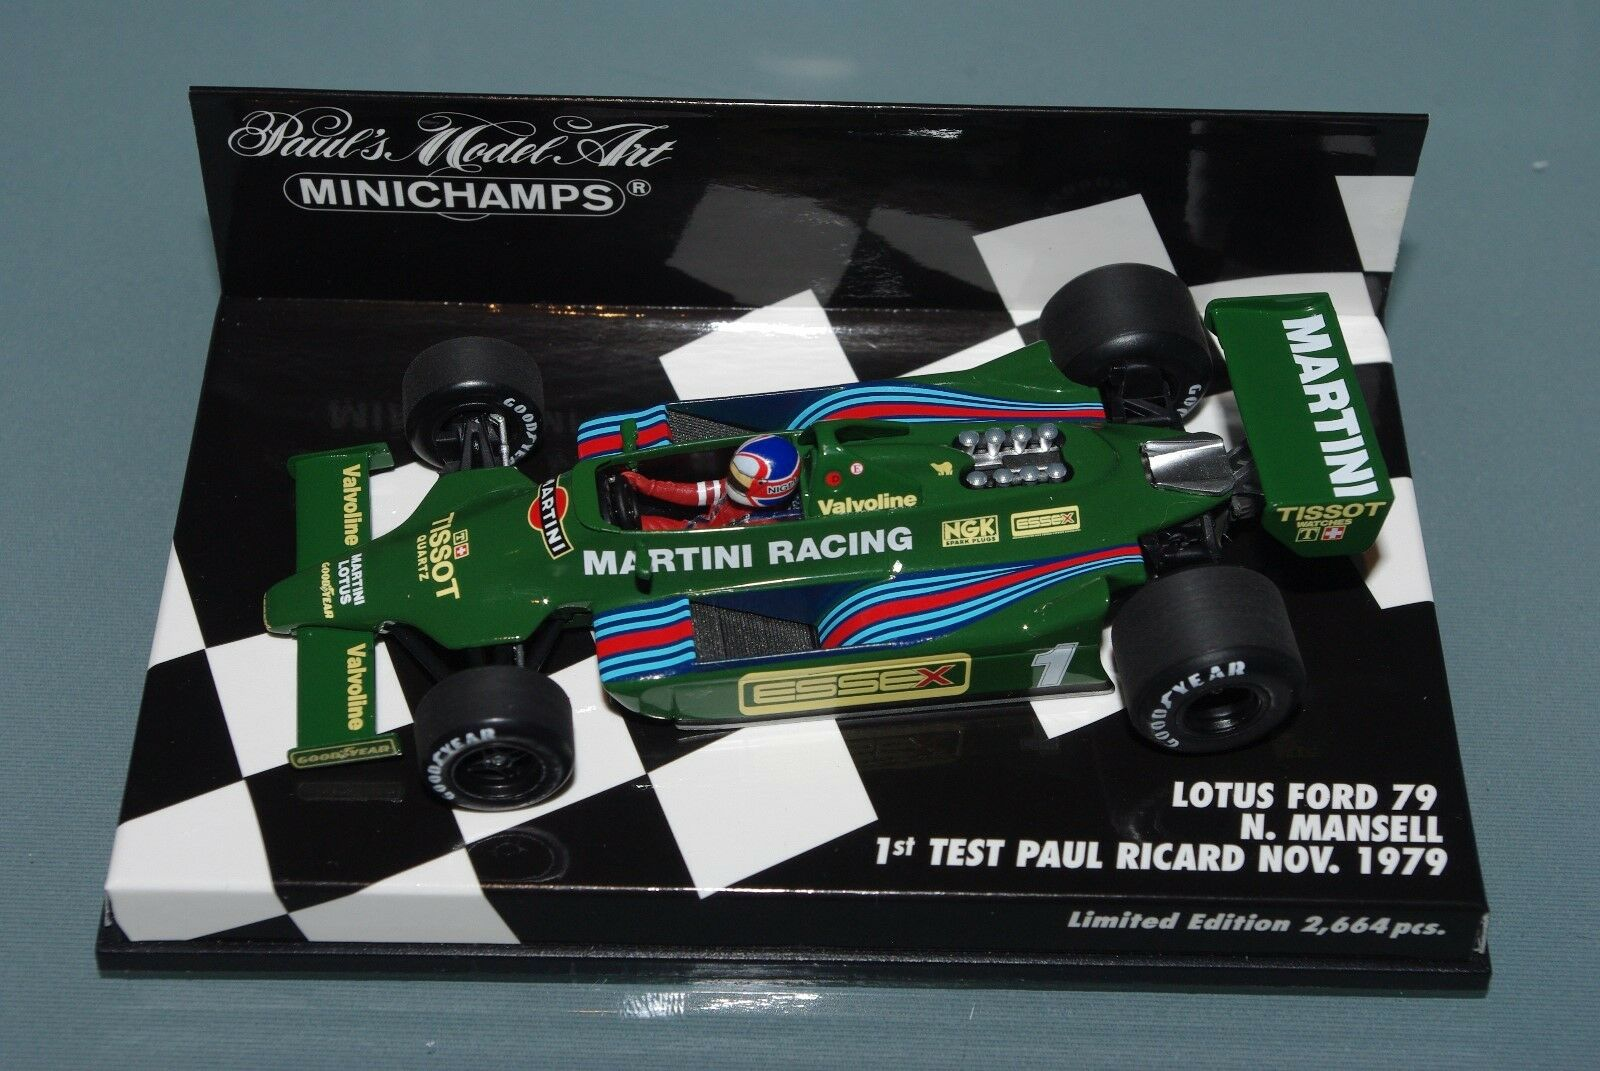 Minichamps 1/43 F1 LOTUS FORD 79 Martini Nigel Mansell 1st test PAUL RICARD 1979